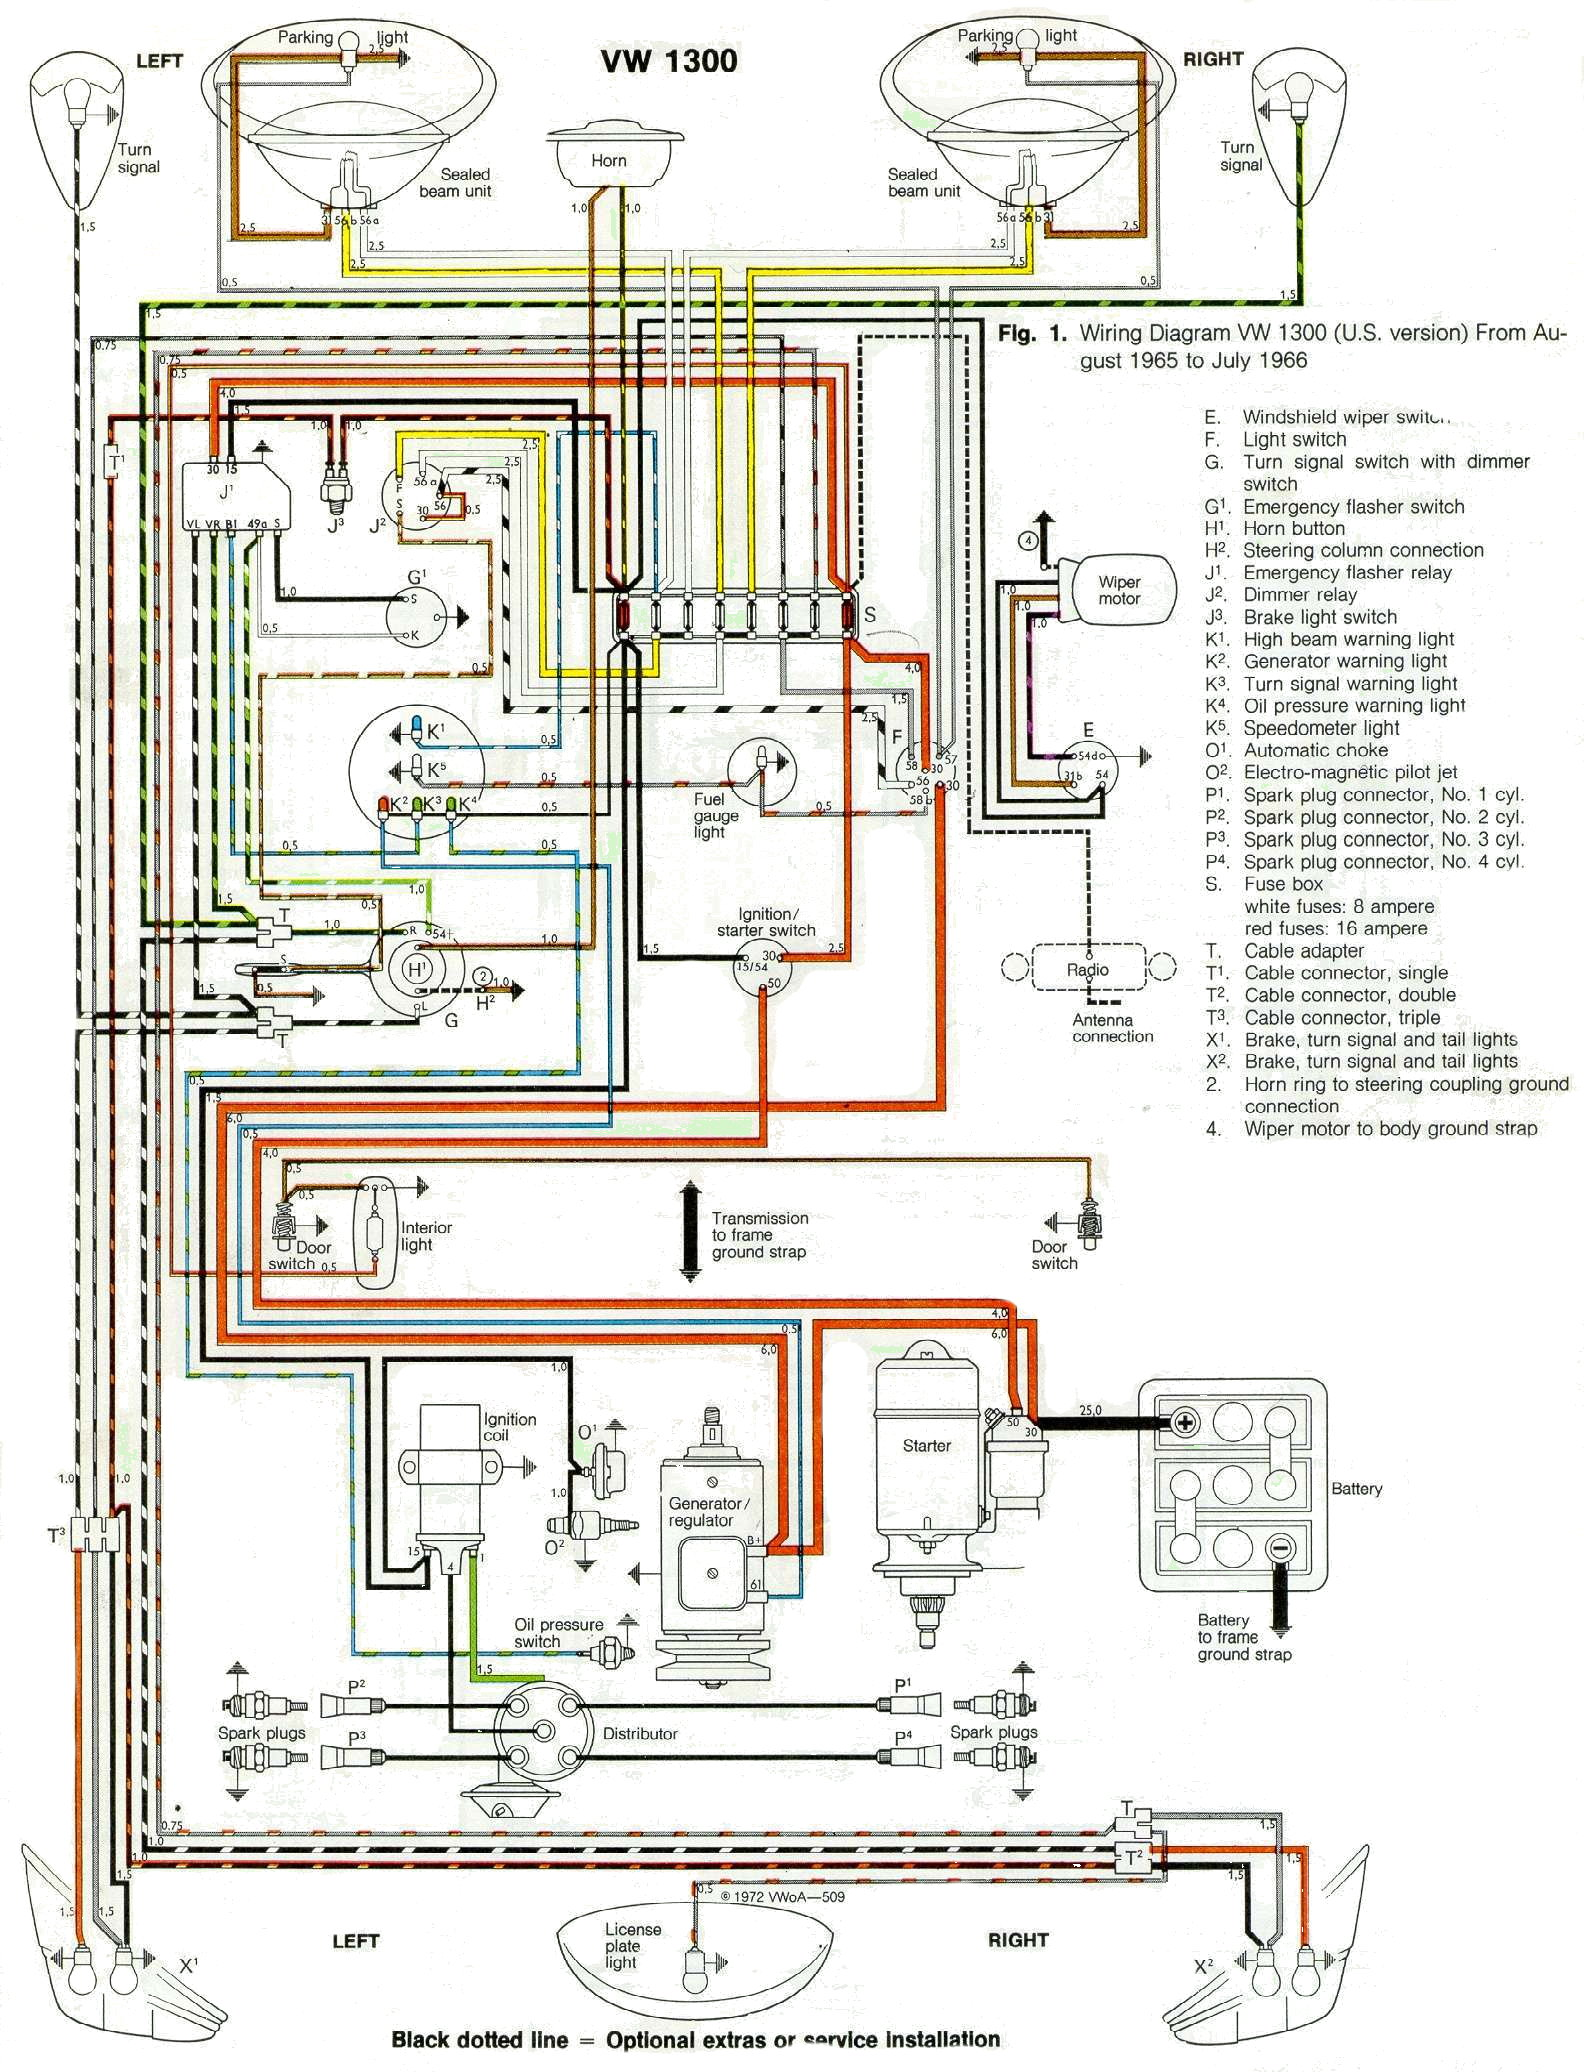 vw fuse panel diagram vw wiring diagrams